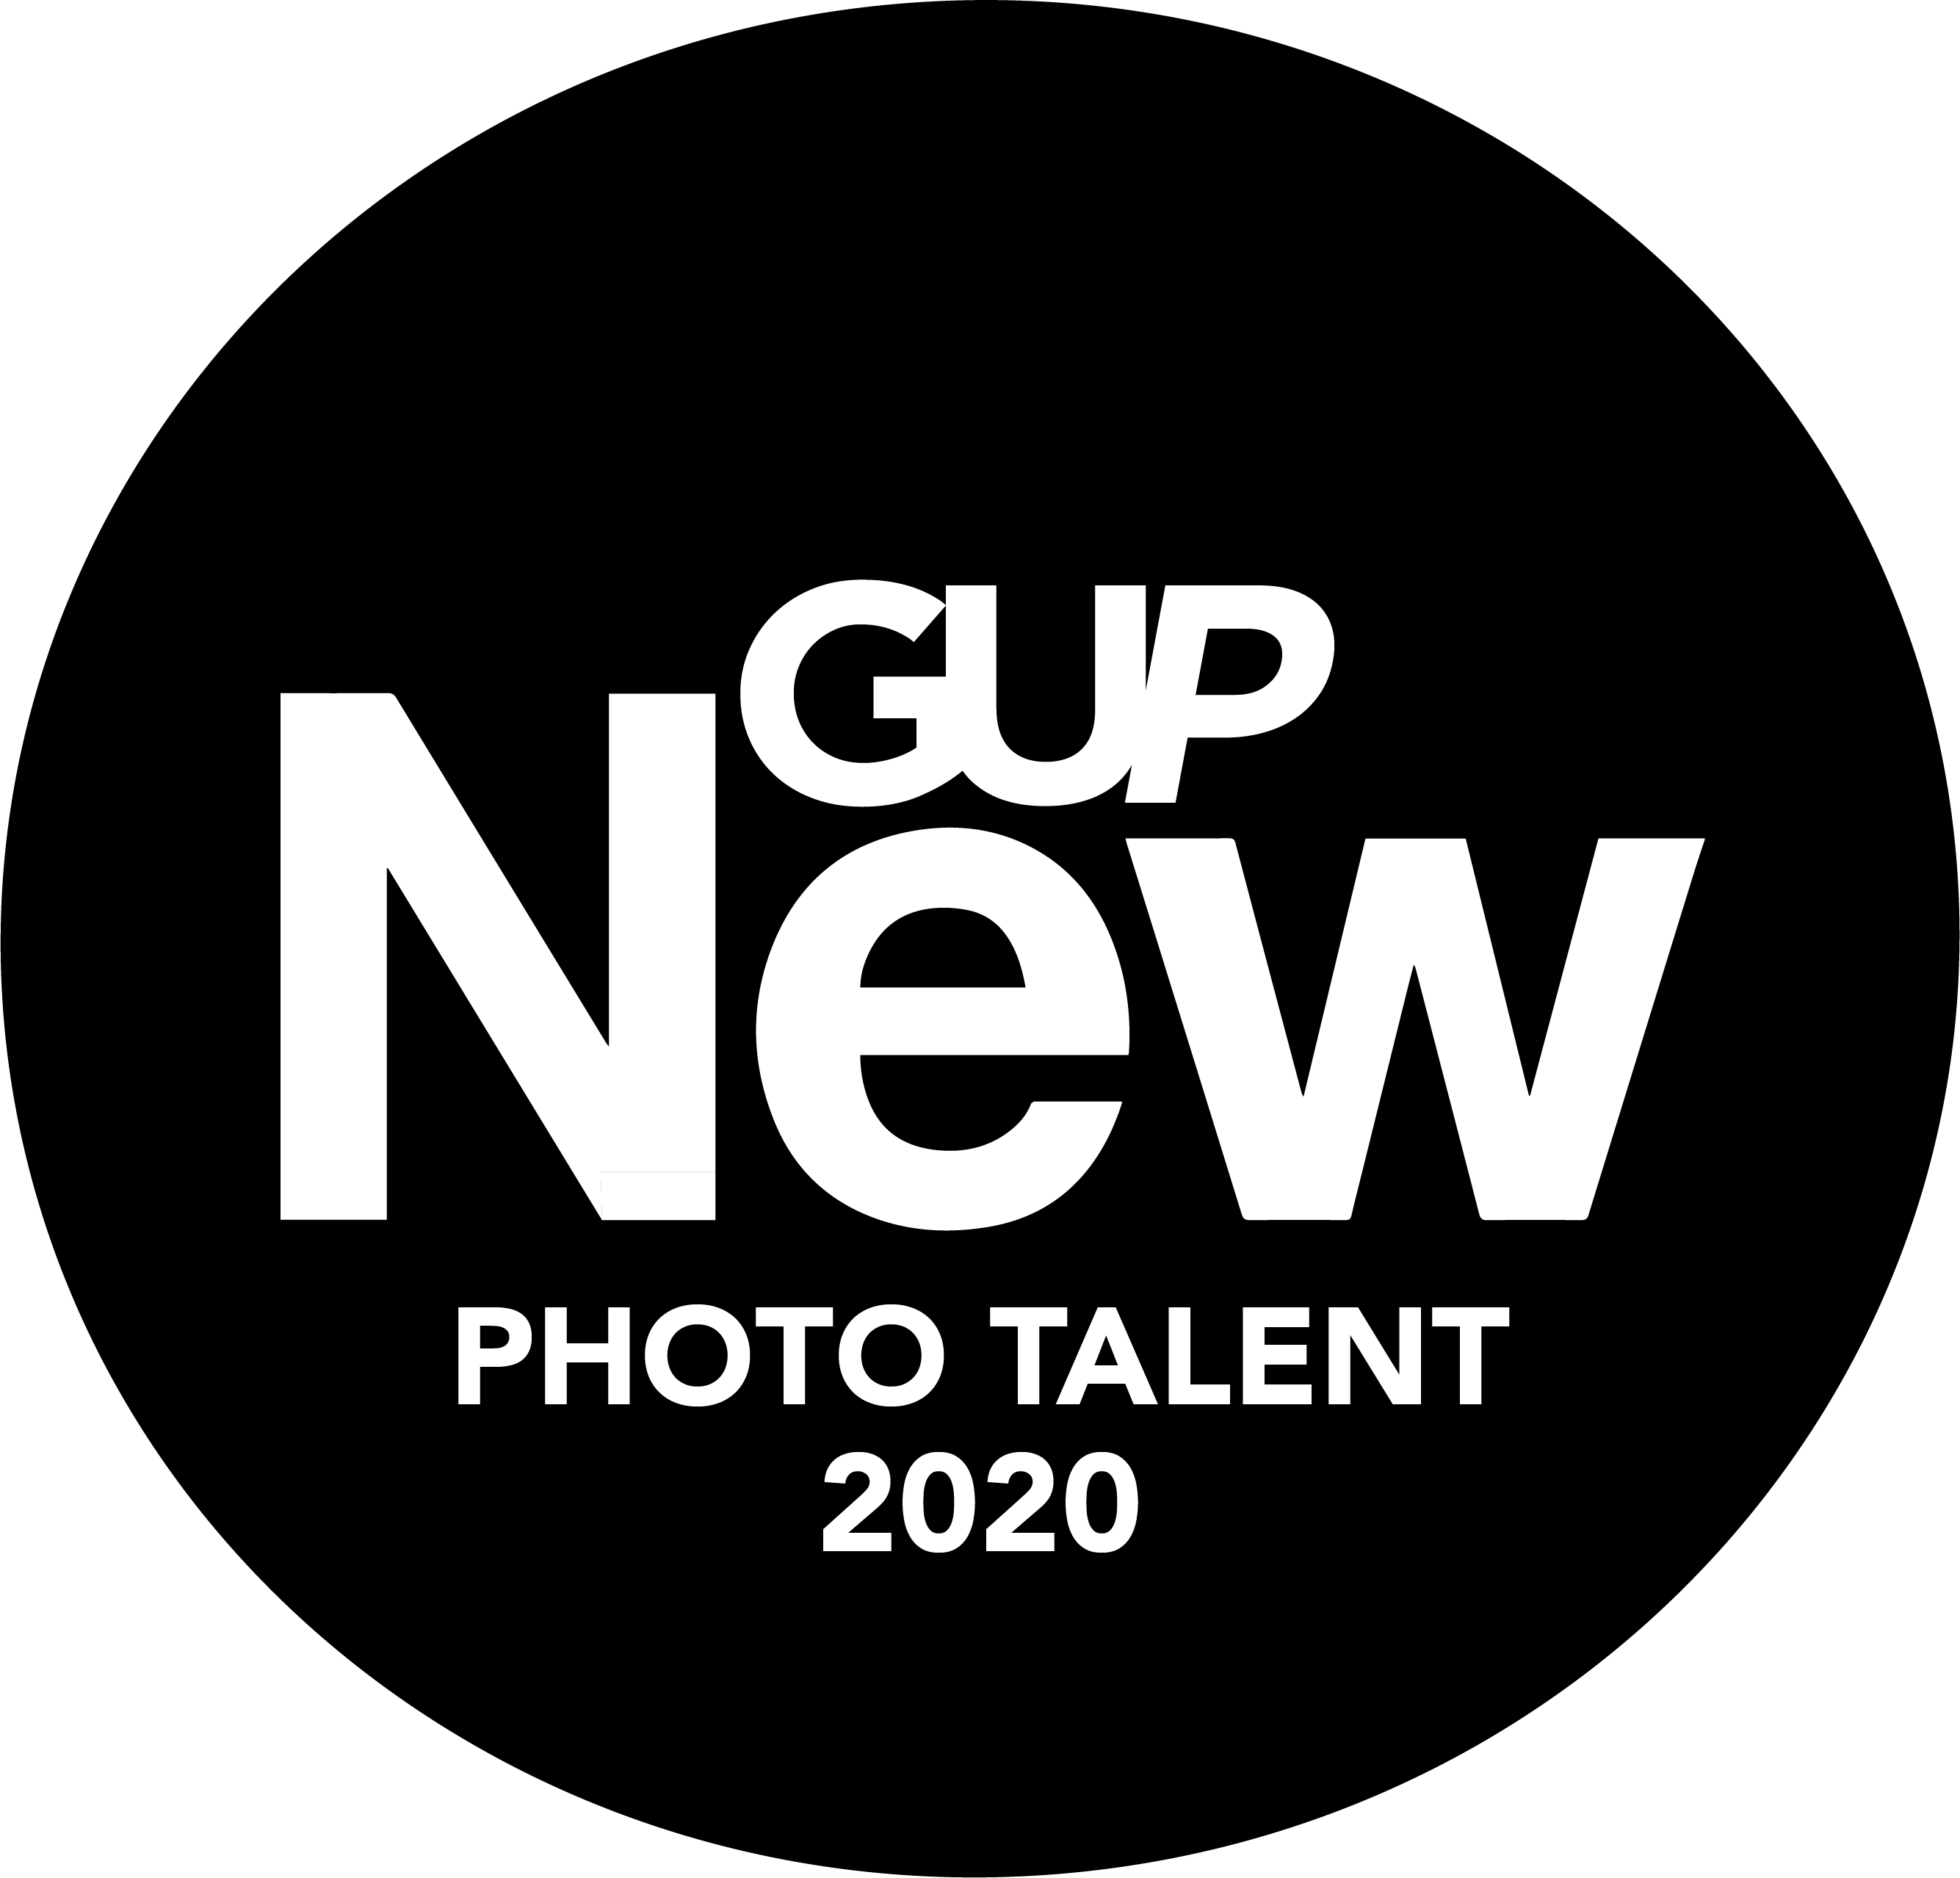 Gup_New_Sticker_Black